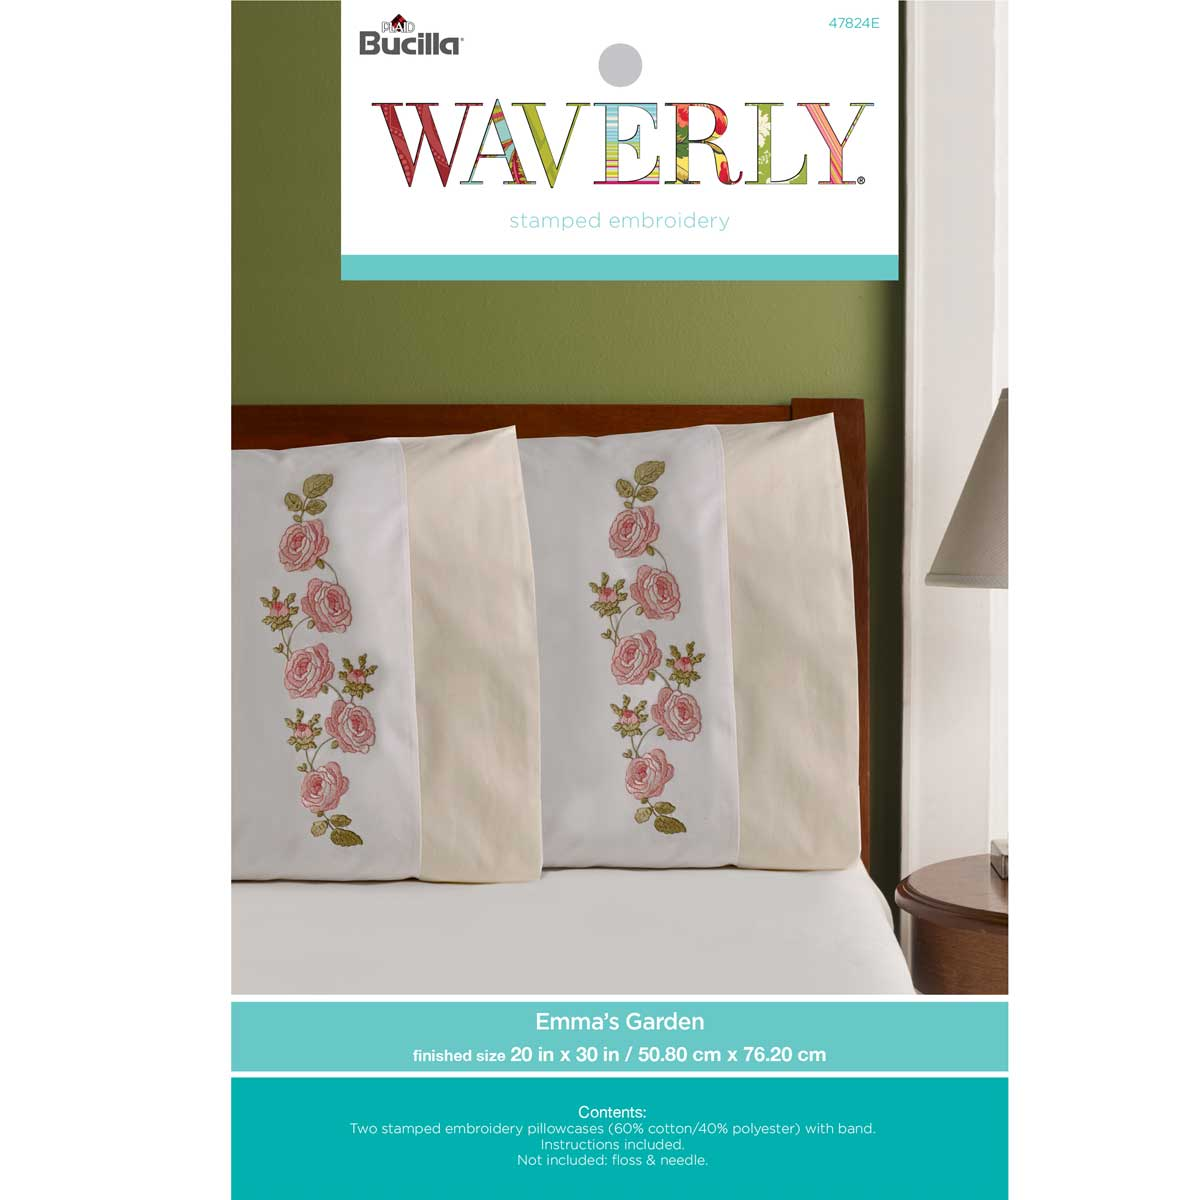 Bucilla ® Waverly ® Emma's Garden Collection Stamped Pillowcase Pair